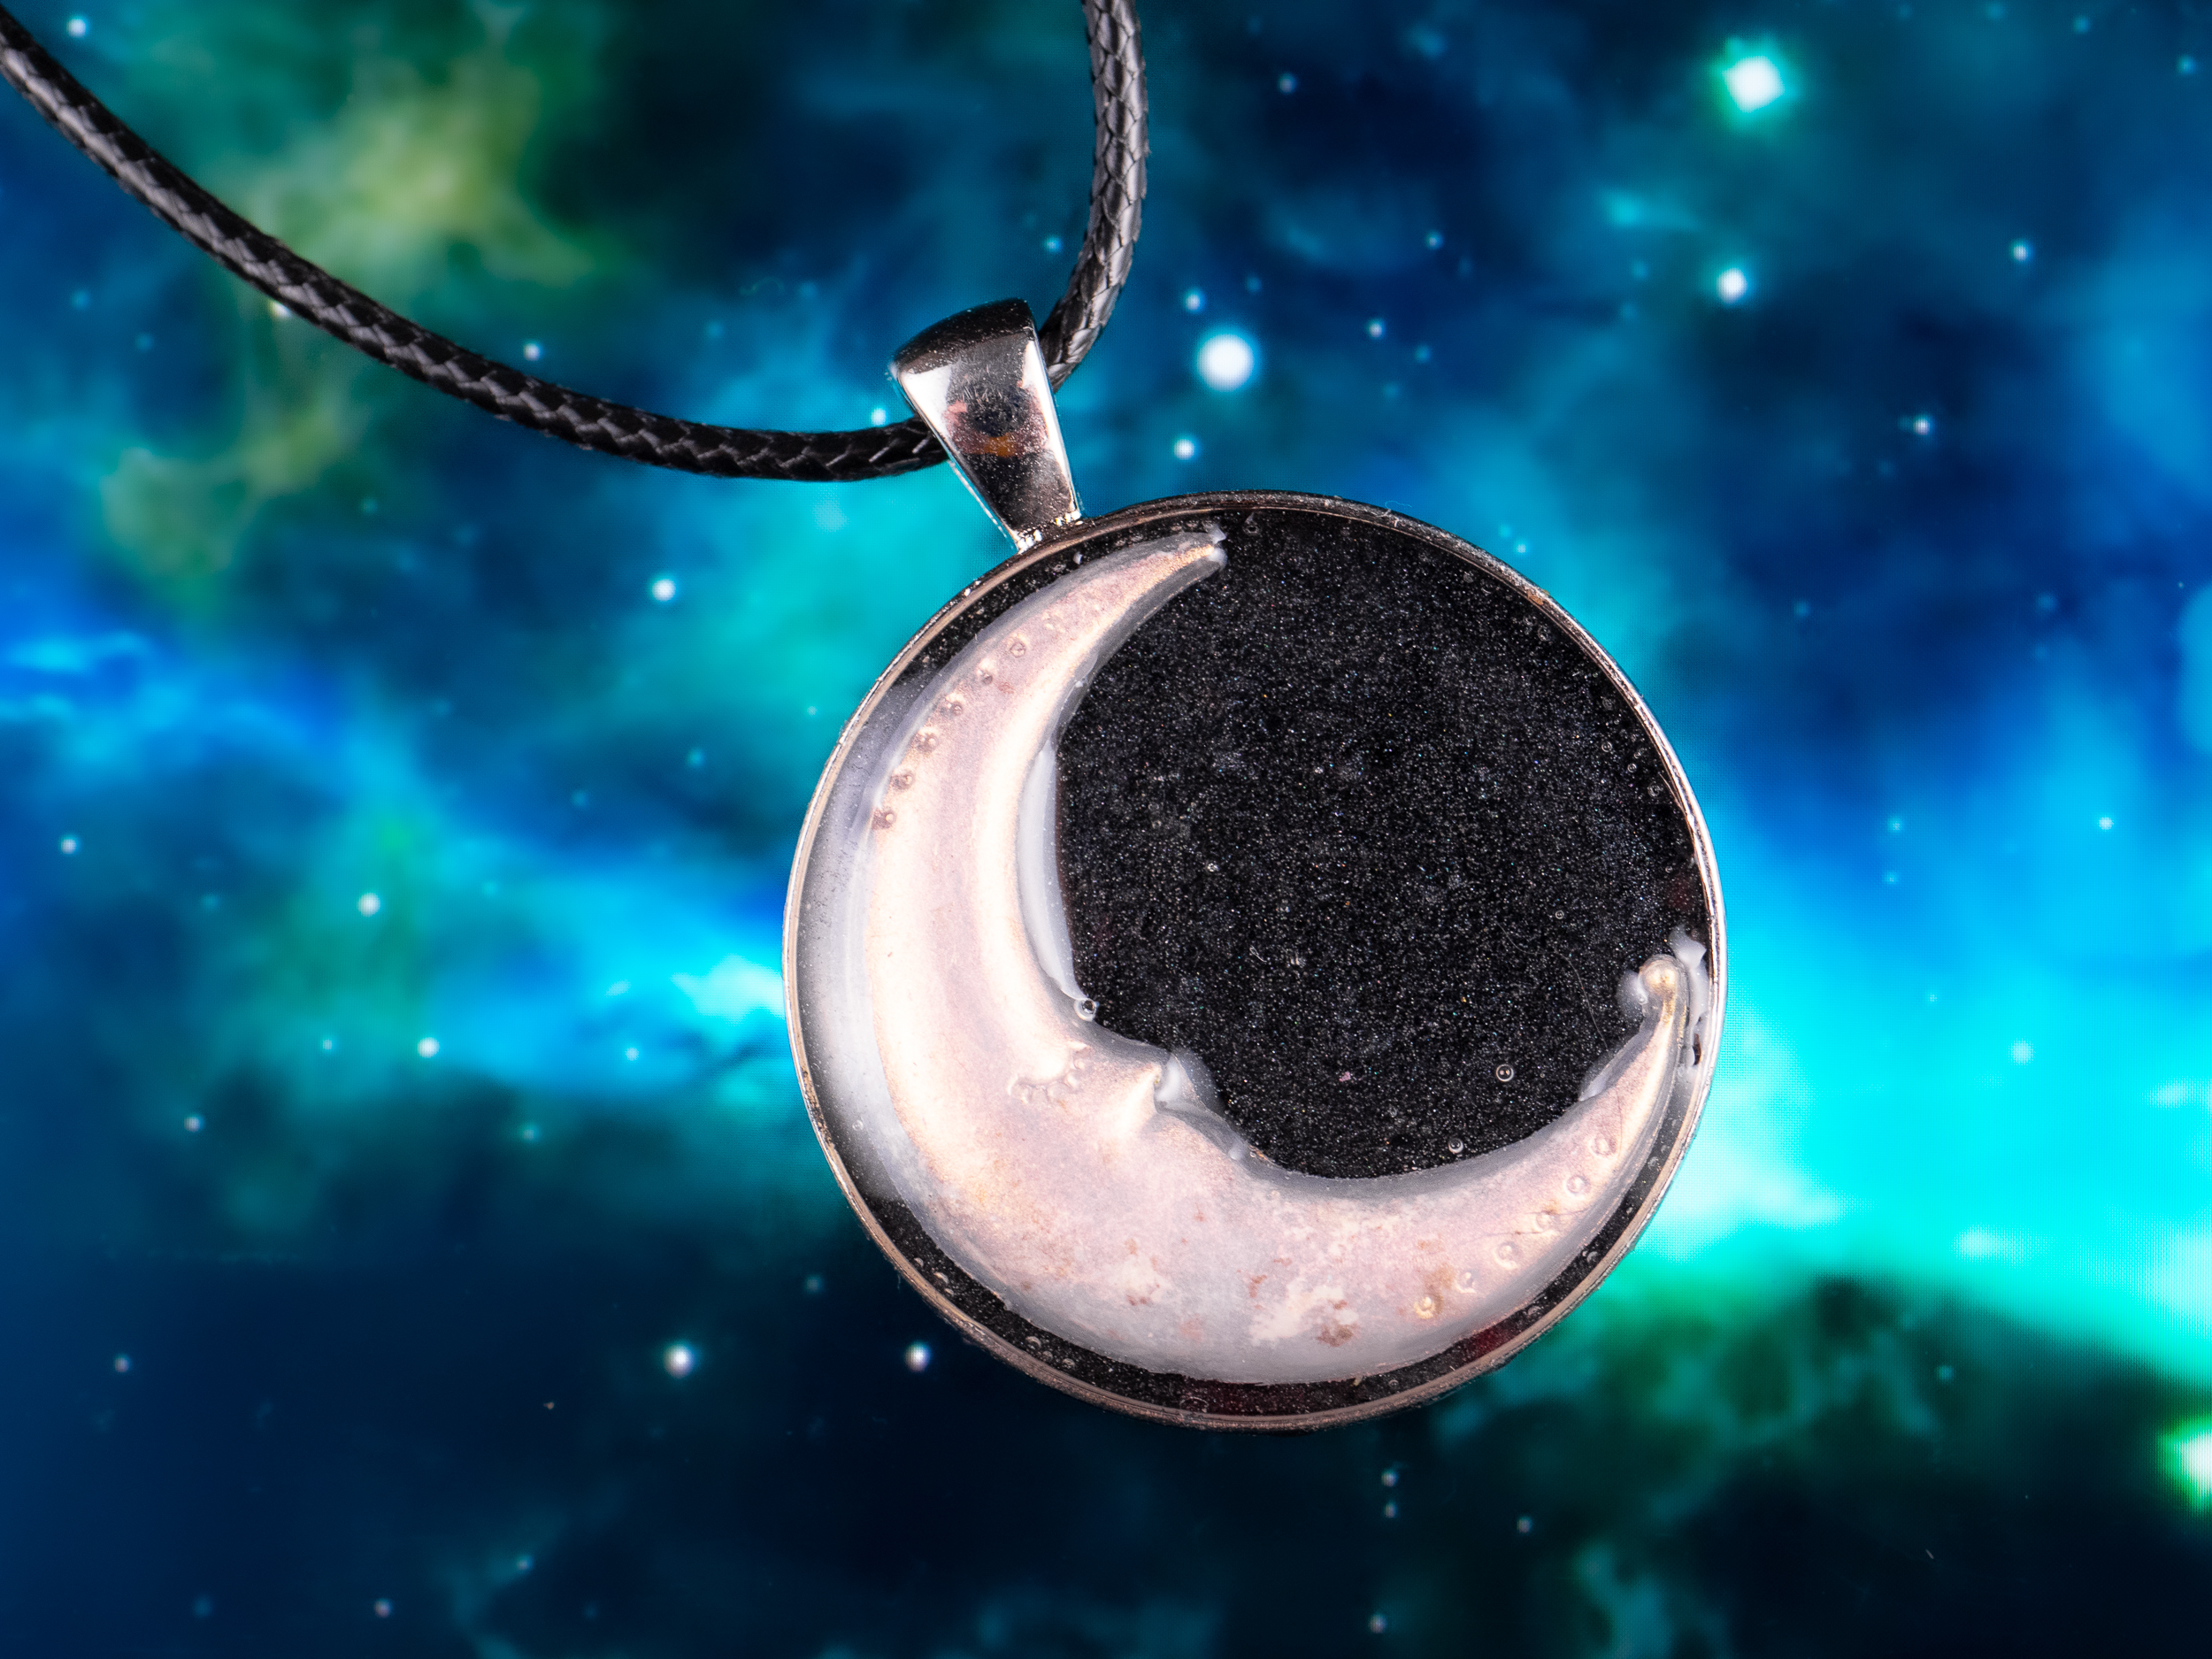 moon dust and black salt necklace